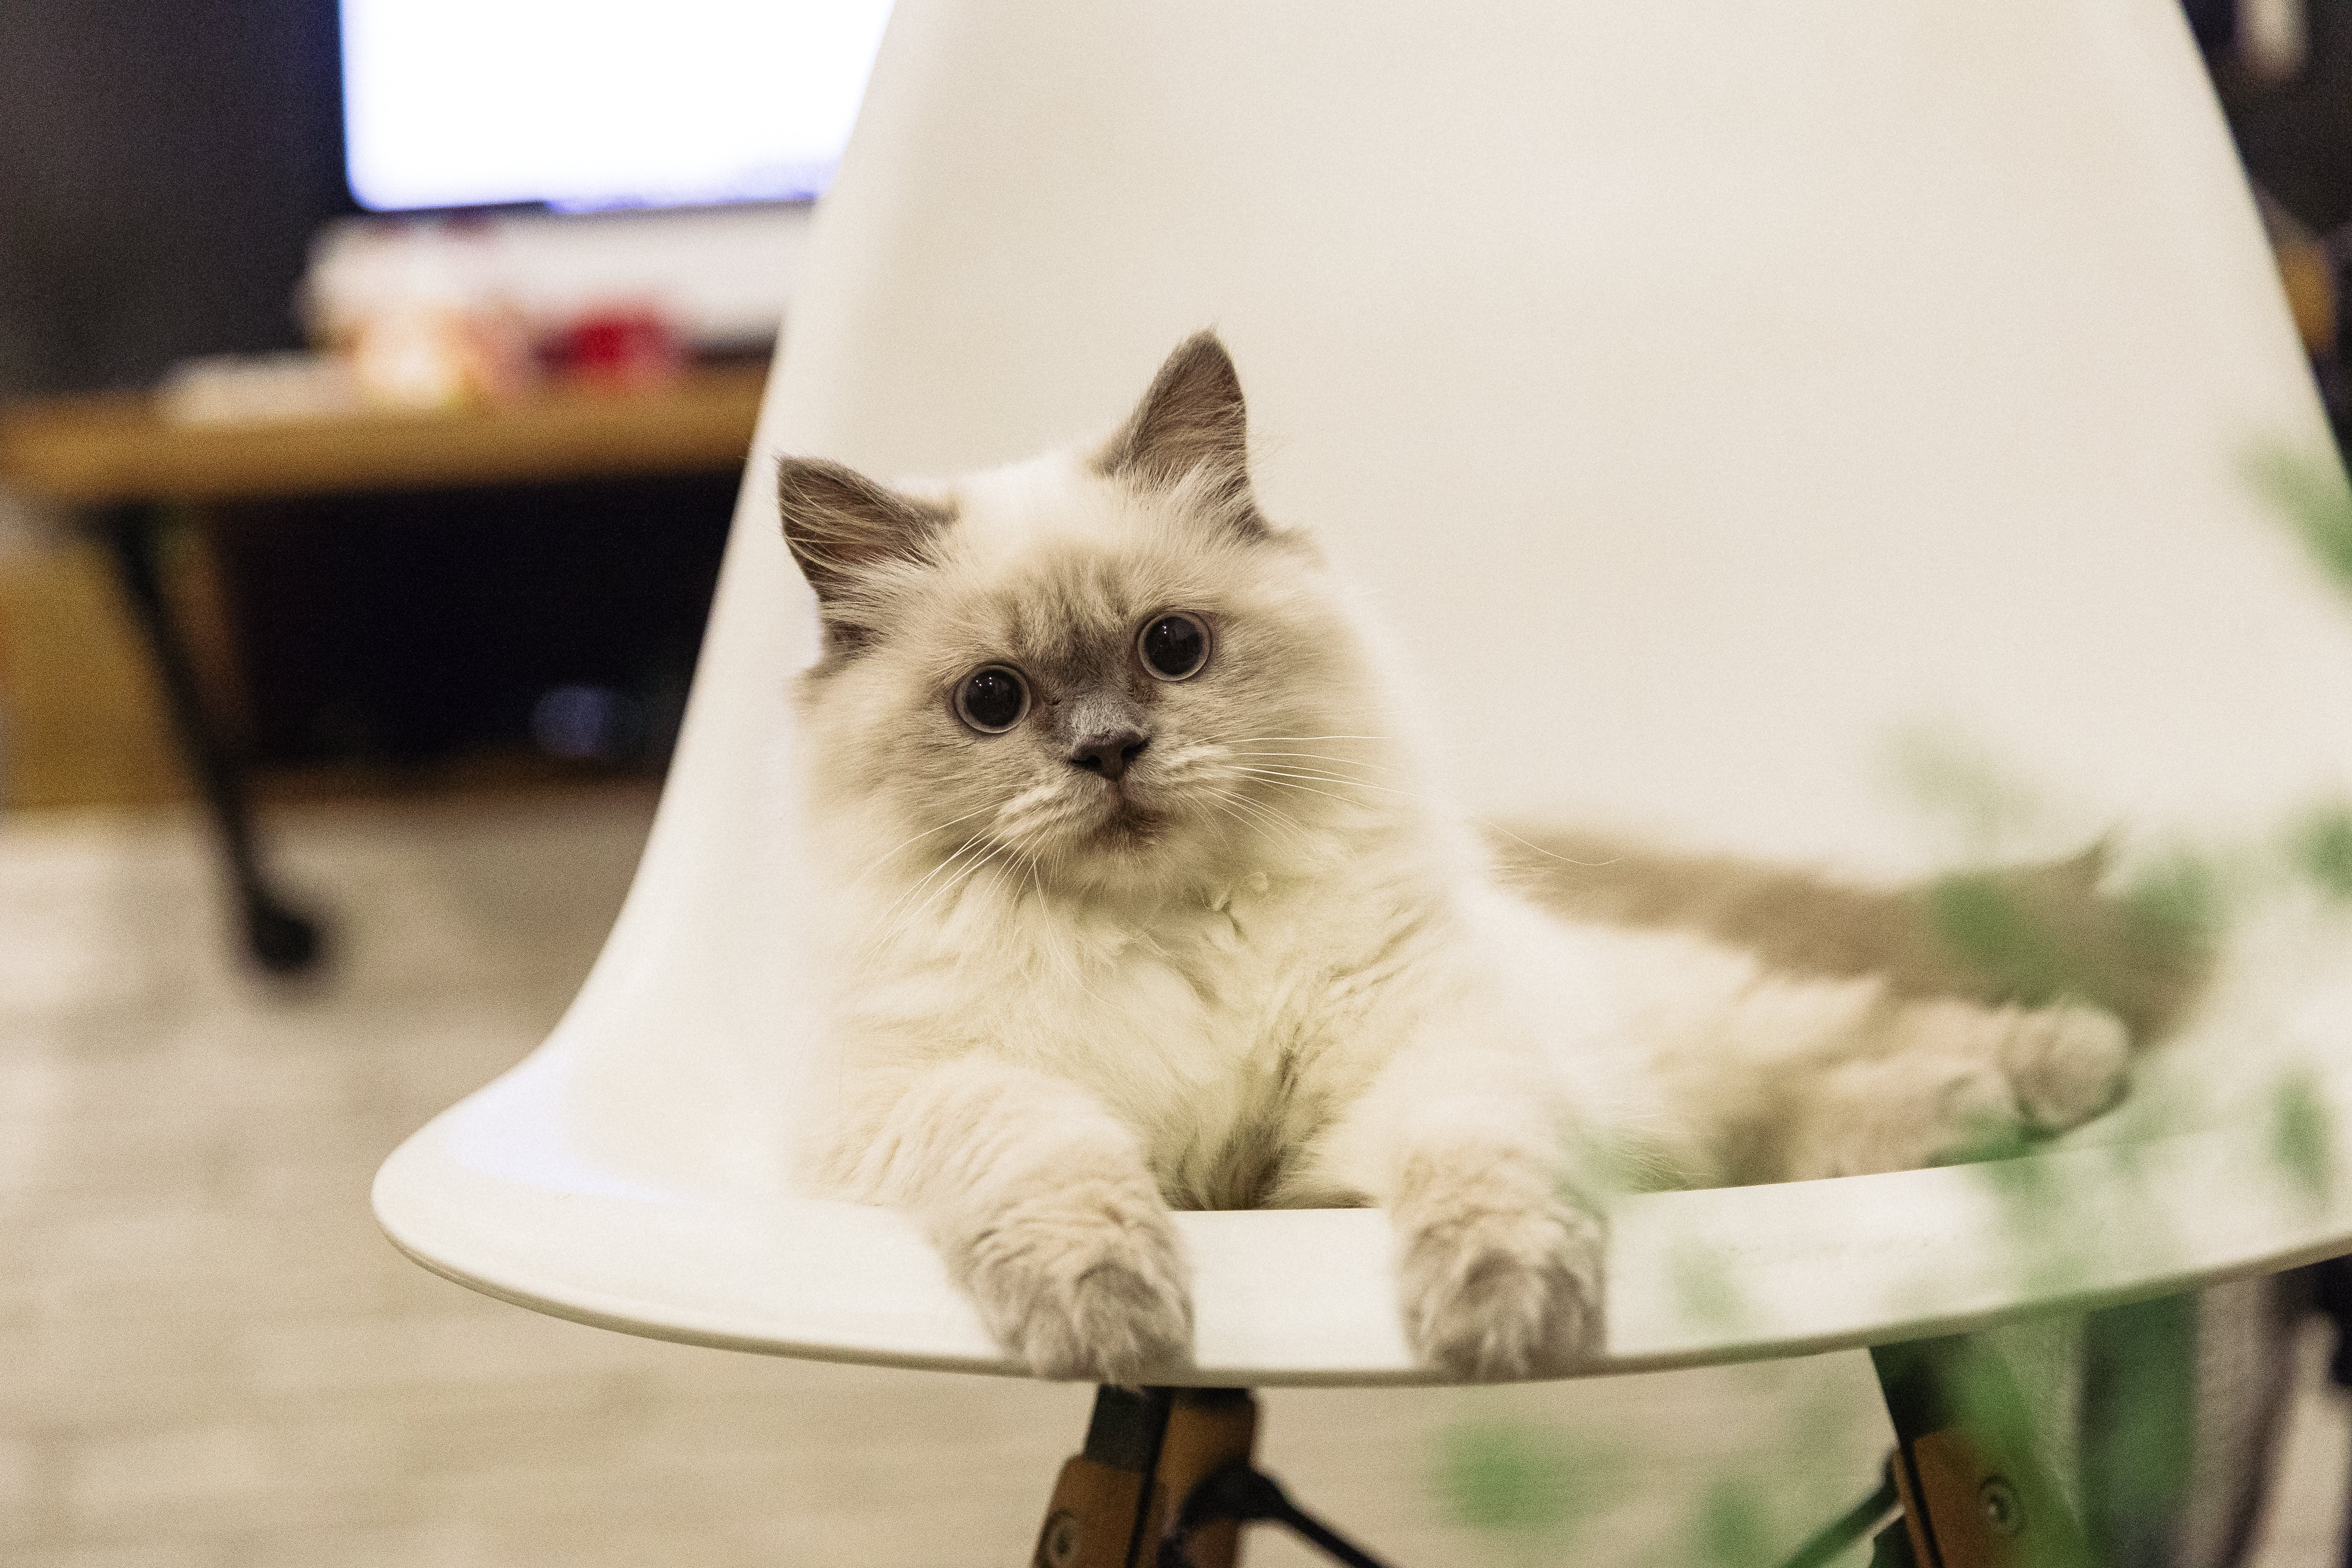 Free stock photo of animal, pet, cute, chair